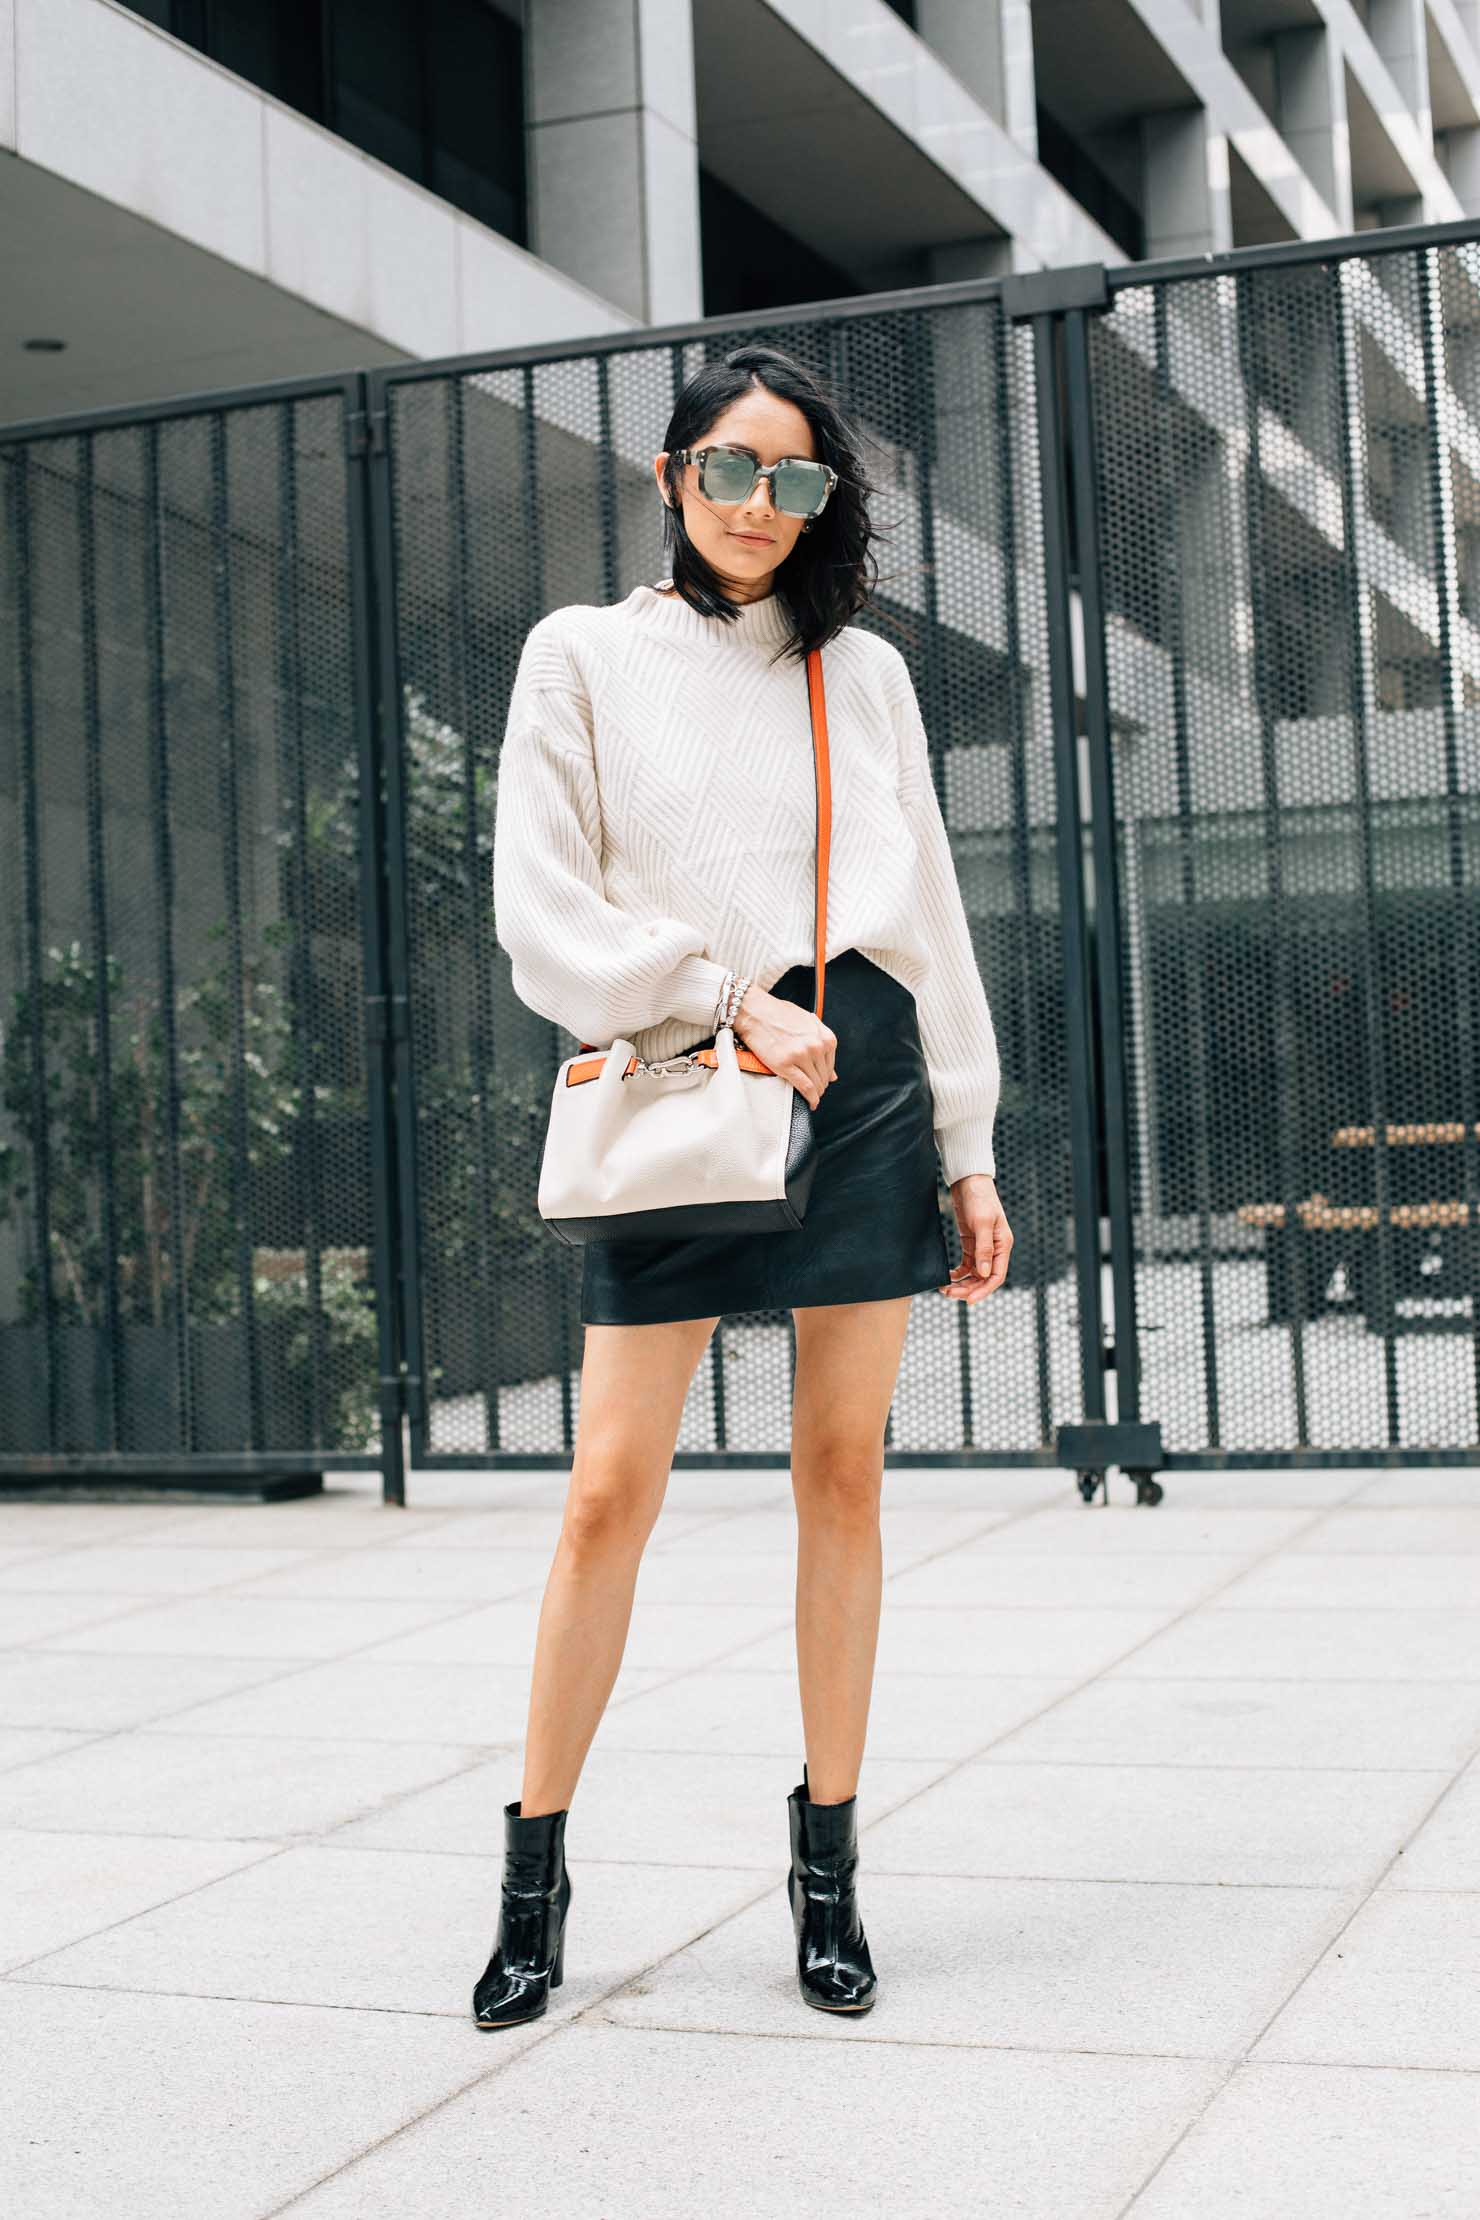 Fashion blogger Lilly Beltran shares tips on dressing for fall in Texas